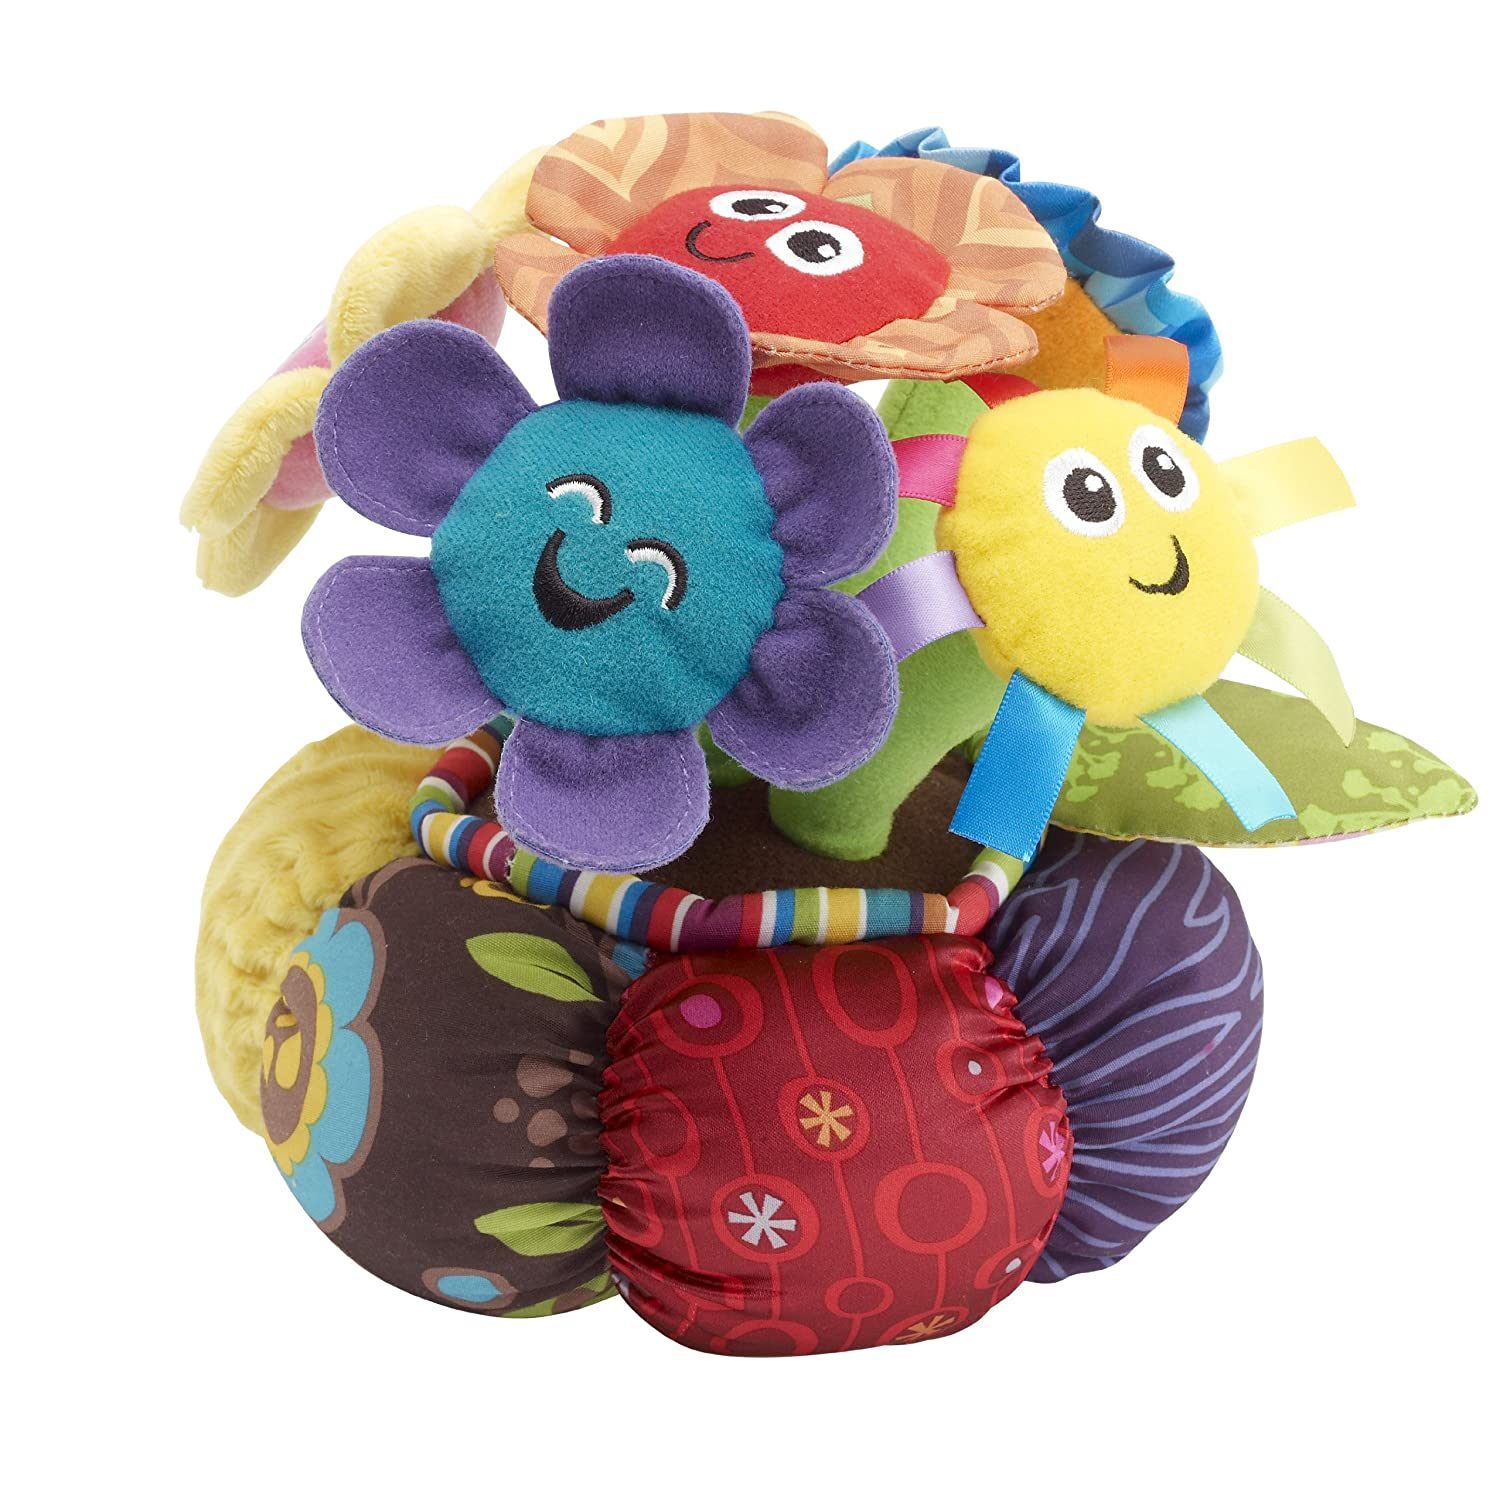 Soft Chime Garden Musical Toy